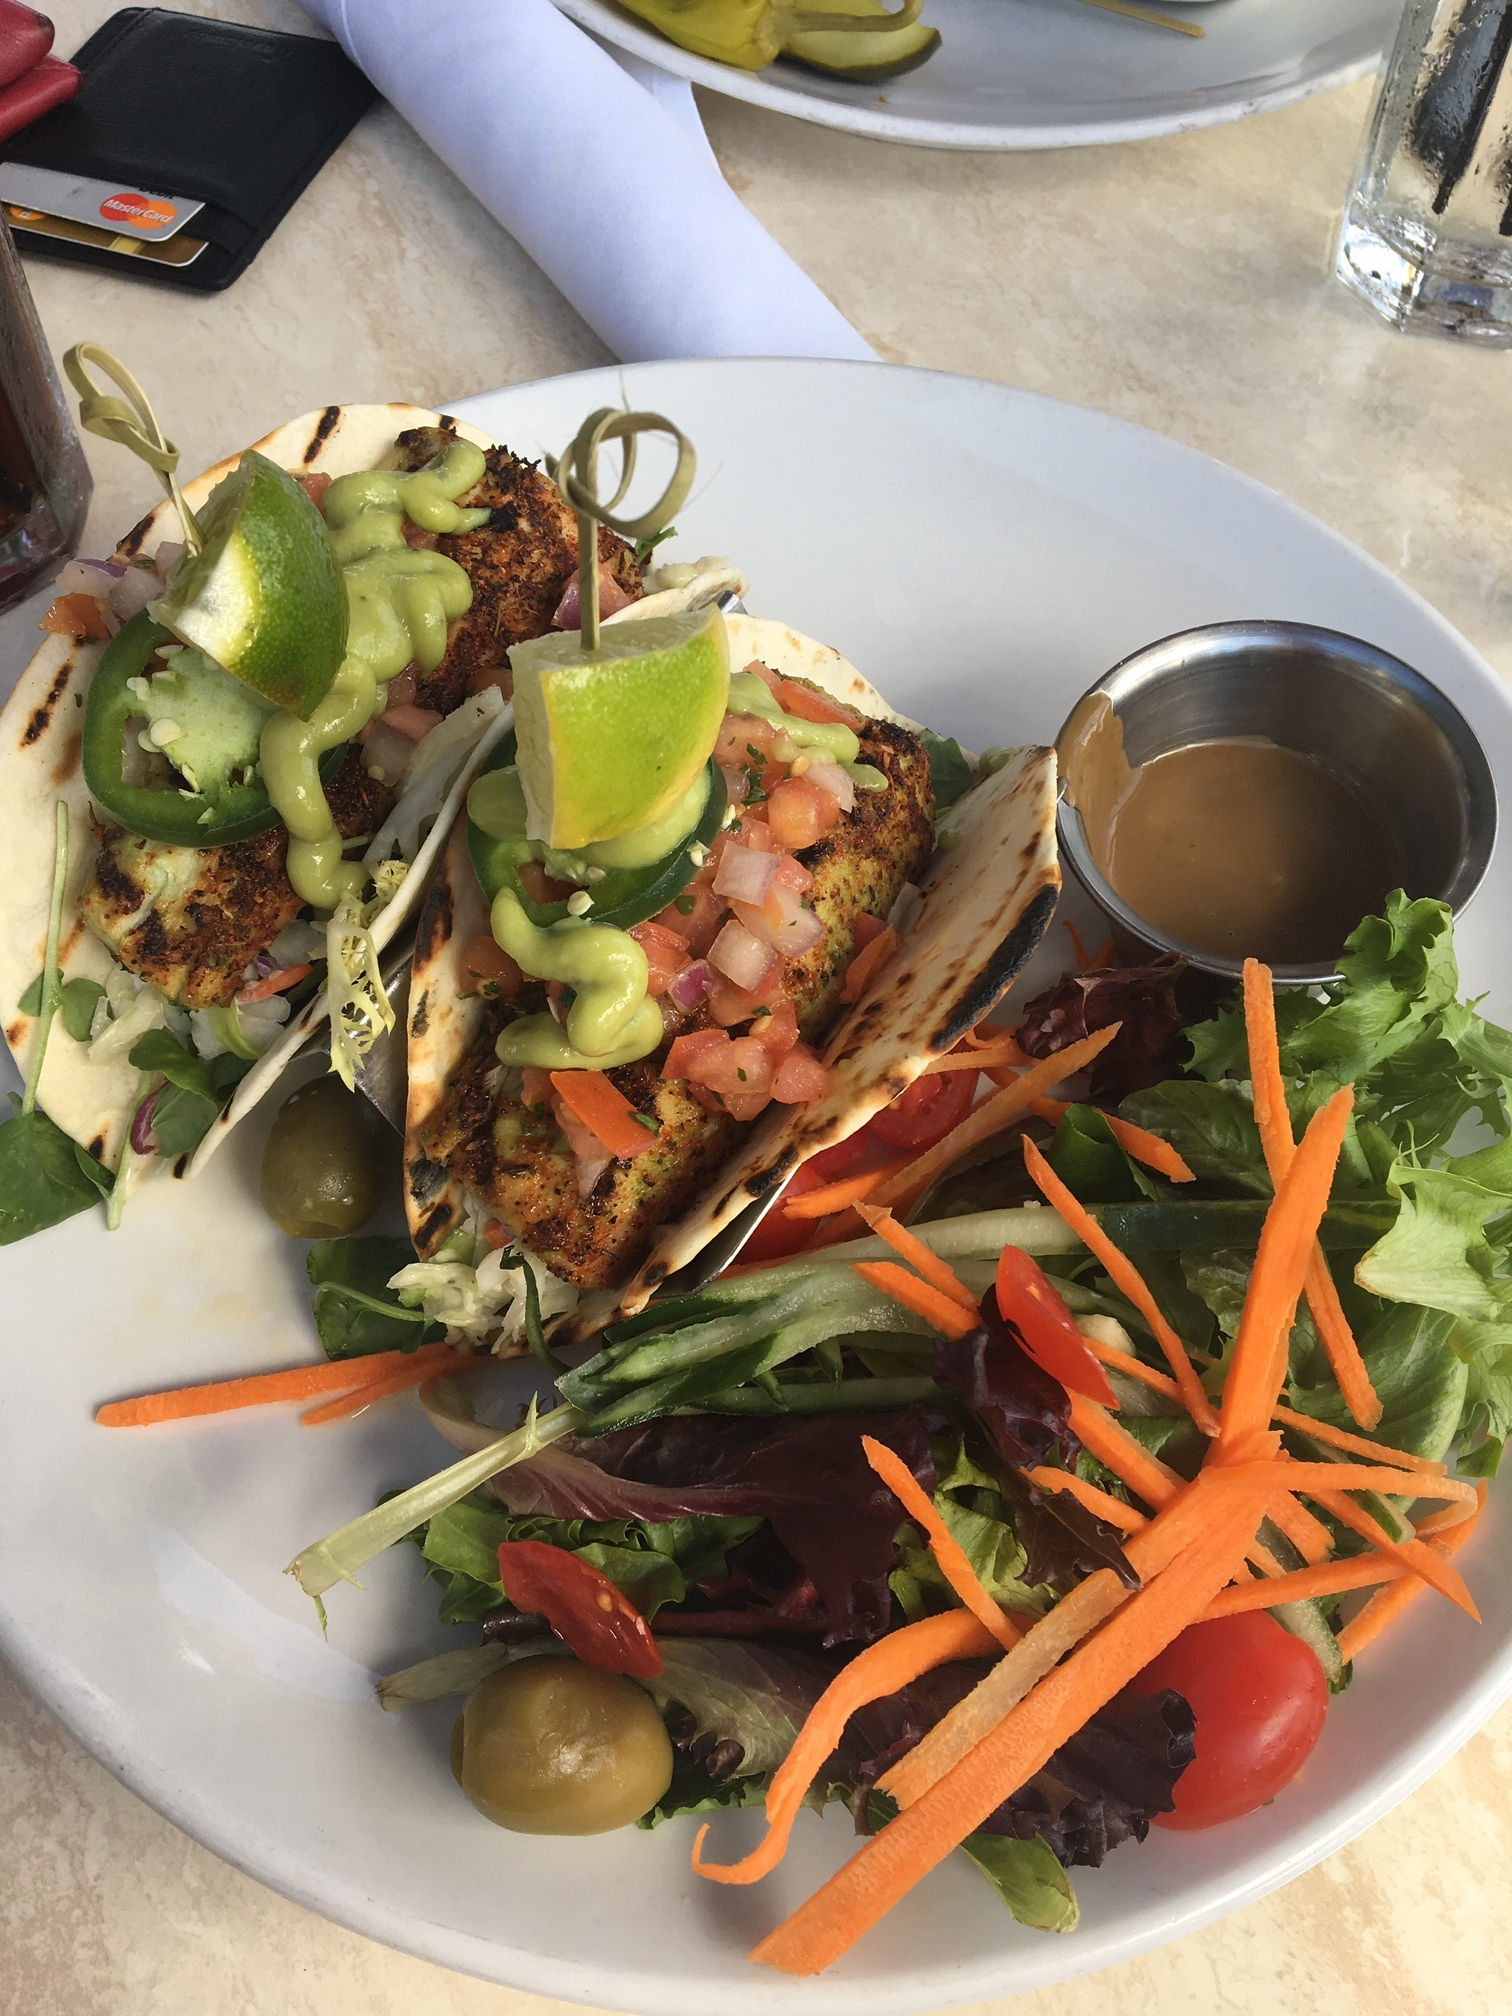 Casablanca Cafe is right on the beach in Fort Lauderdale - it's been a family favorite of ours for years. Lime cilantro fish tacos are my go-to, but only served during lunch.